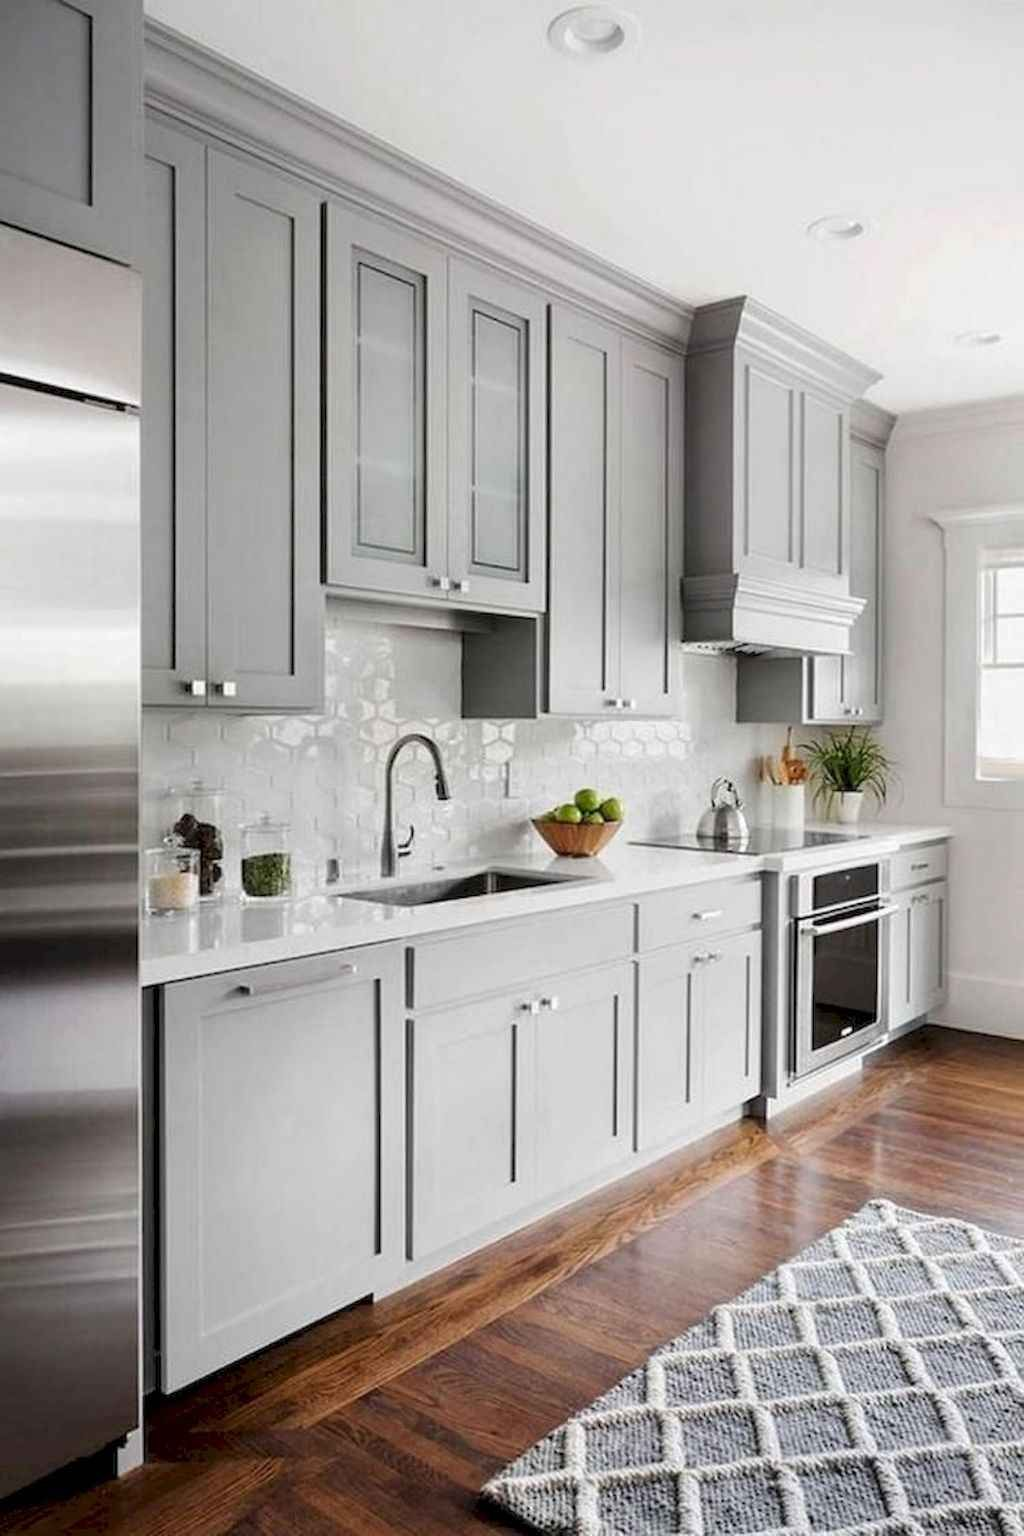 75 farmhouse gray kitchen cabinet design ideas with images shaker style kitchen cabinets on kitchen cabinets farmhouse style id=15687